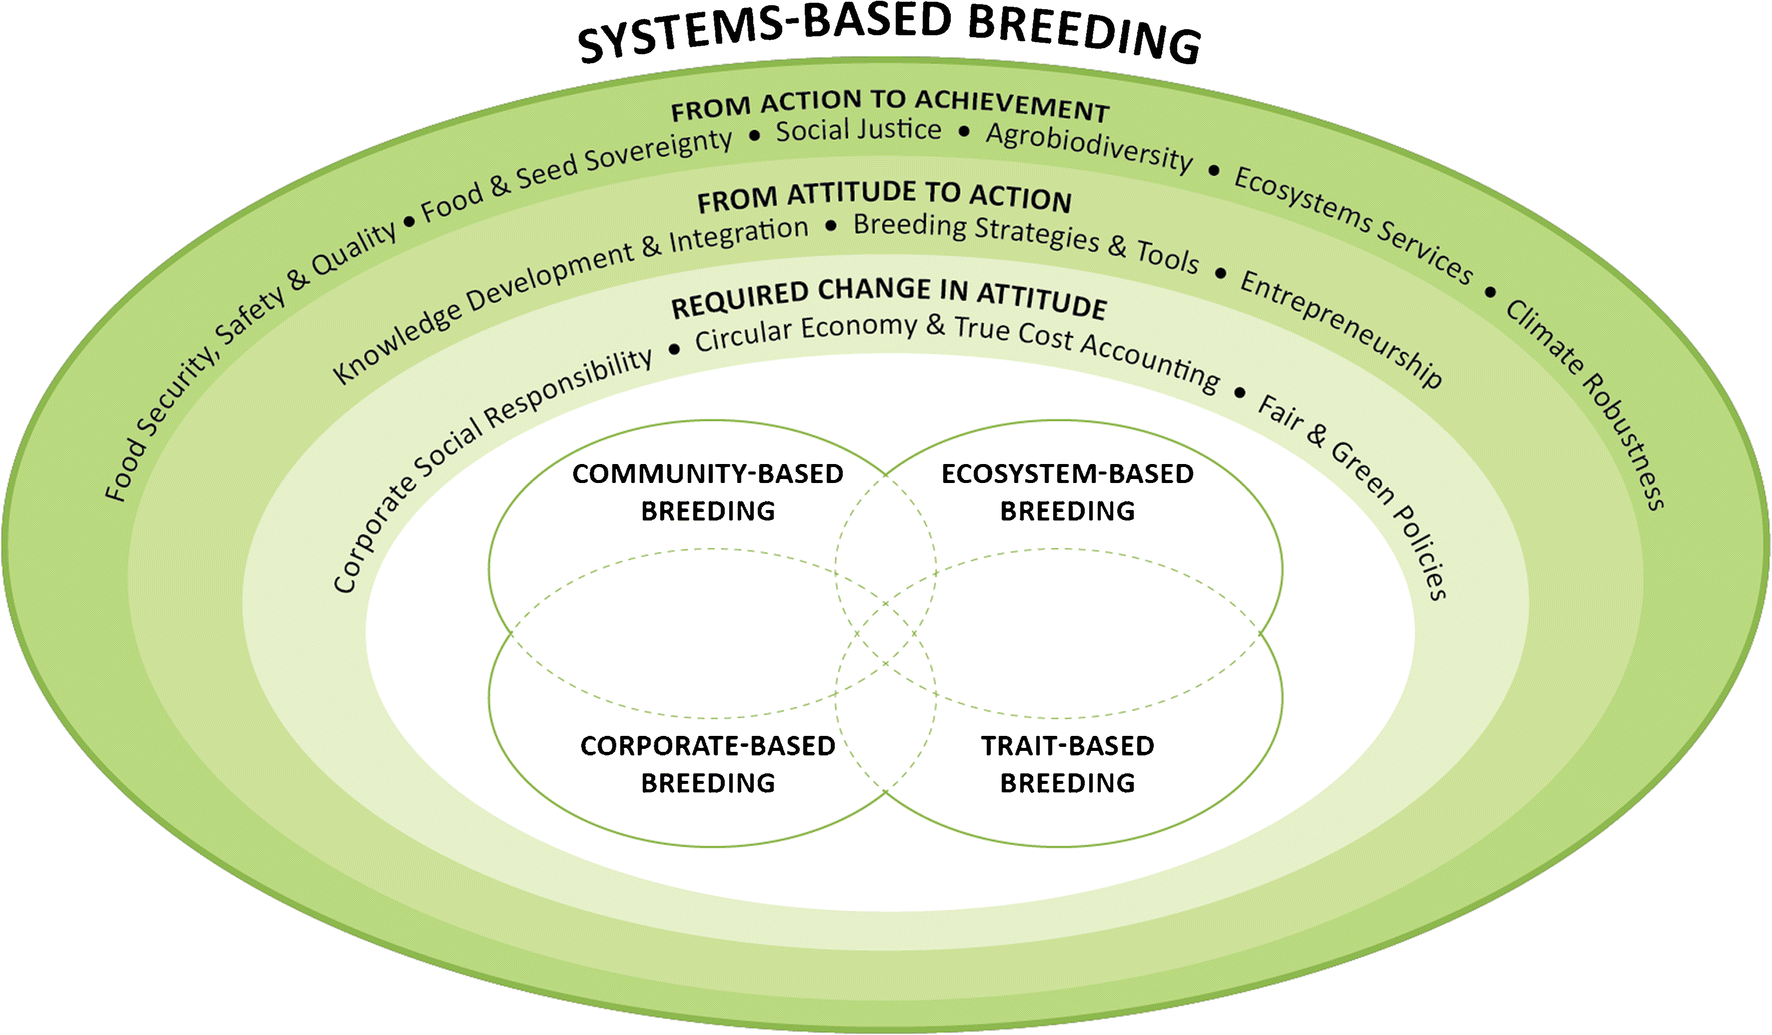 Towards resilience through systems-based plant breeding  A review